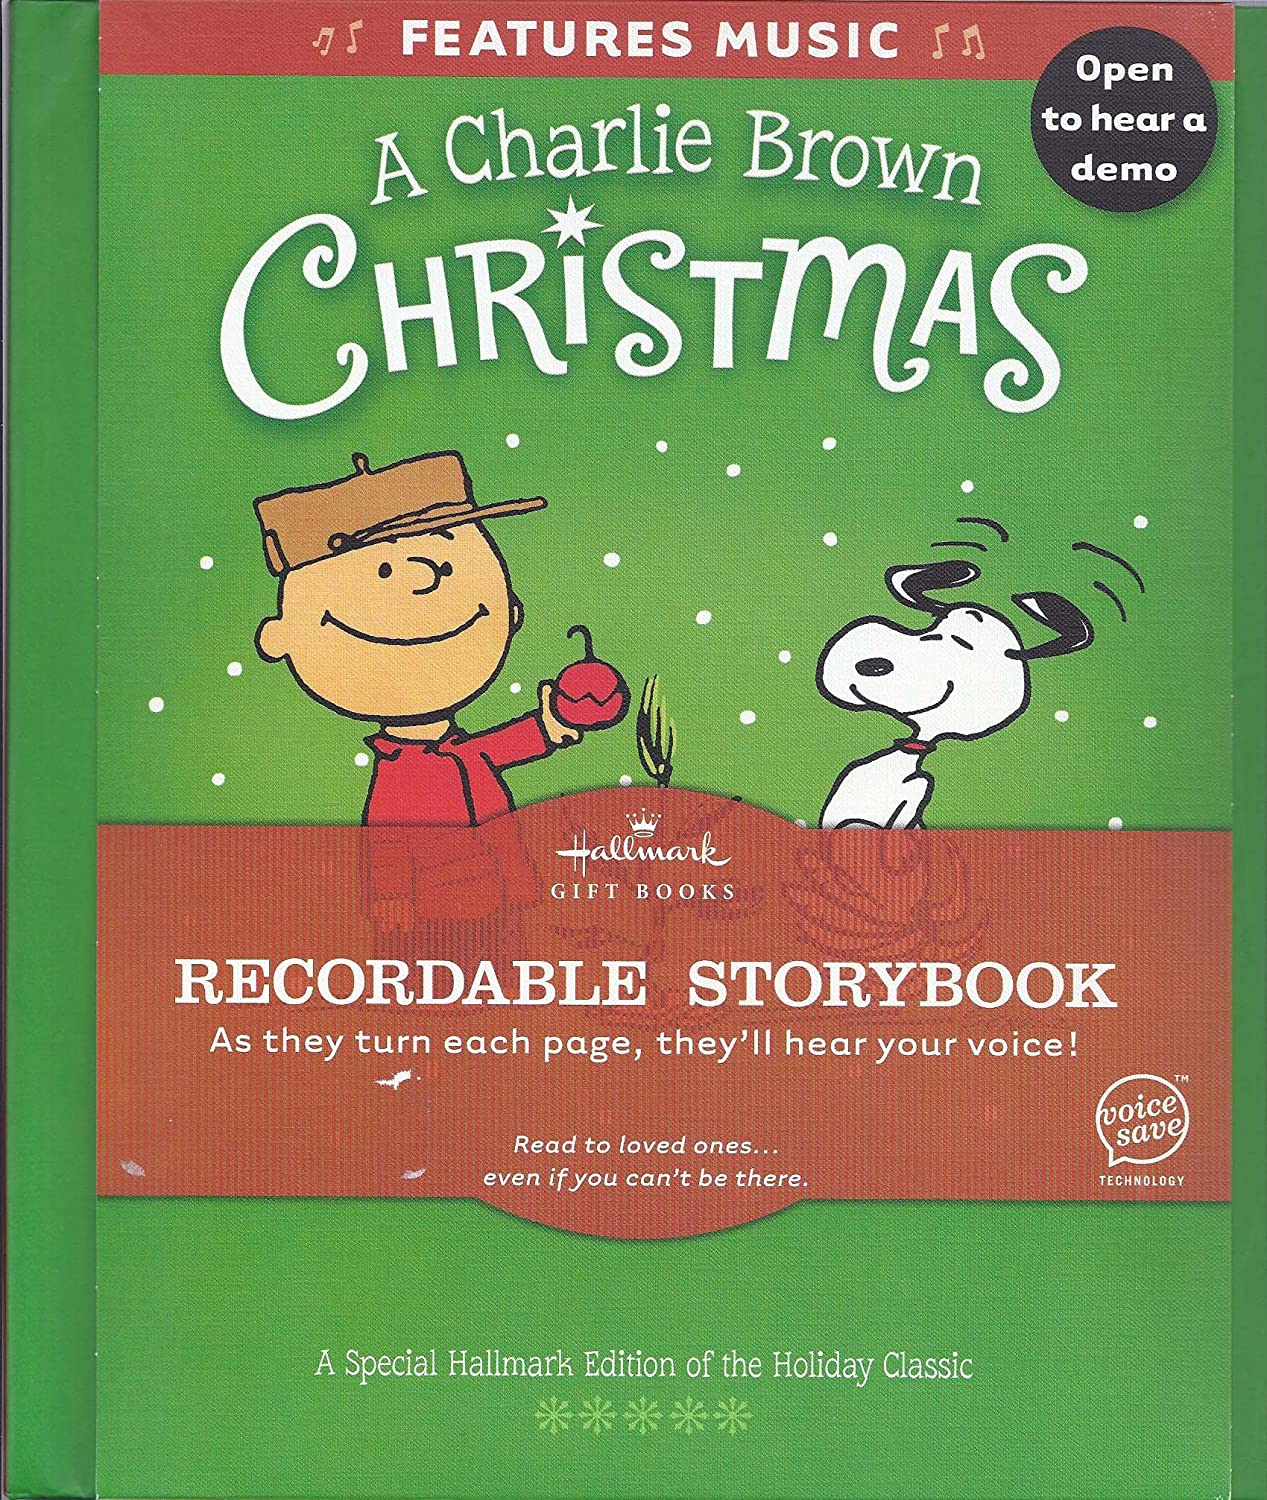 Amazon.com : A Charlie Brown Christmas Recordable Storybook : A ...